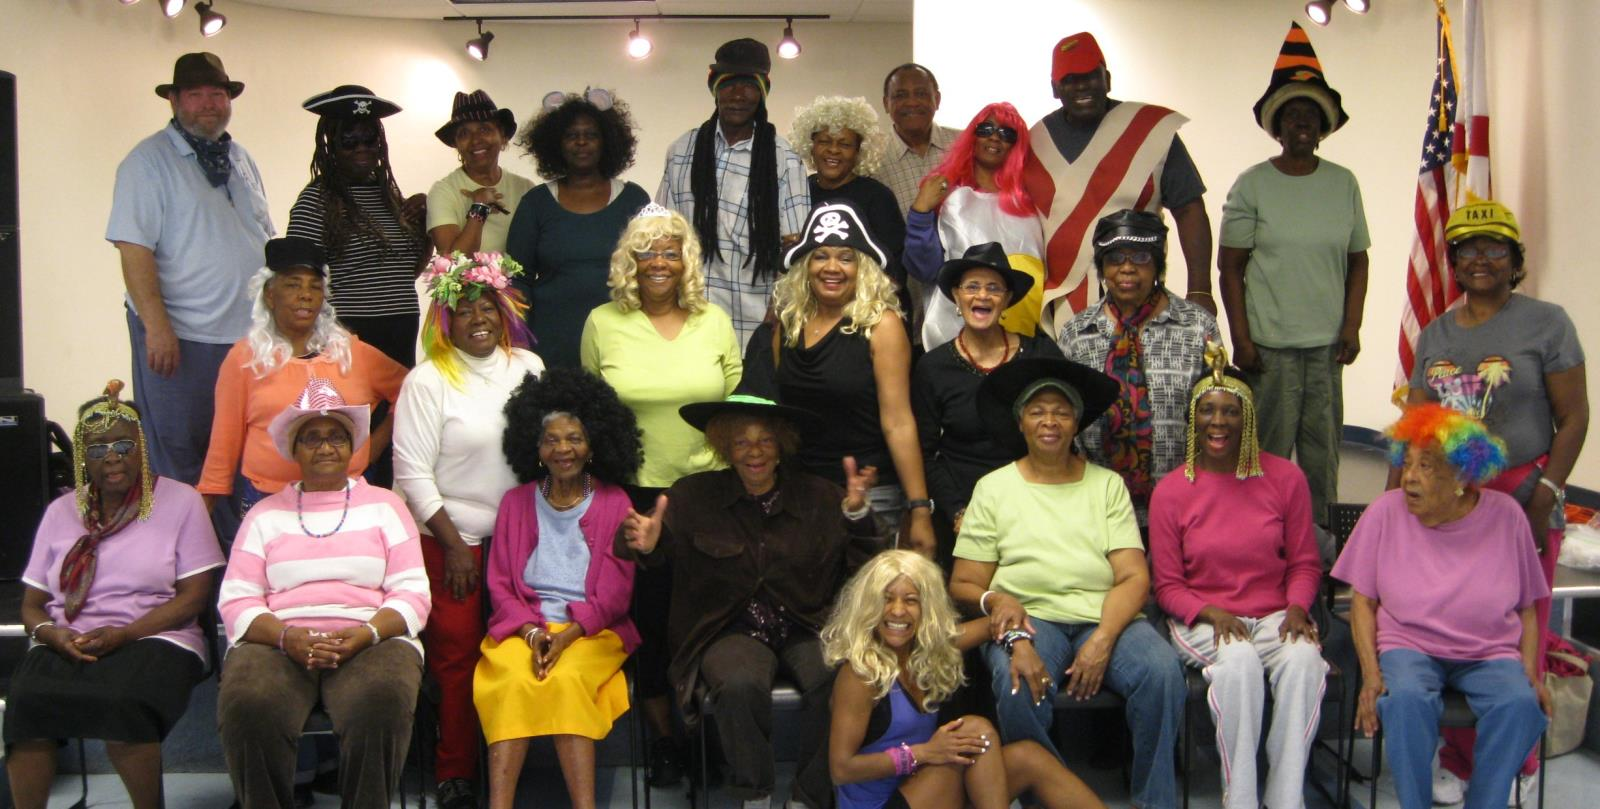 Senior Center Costumes